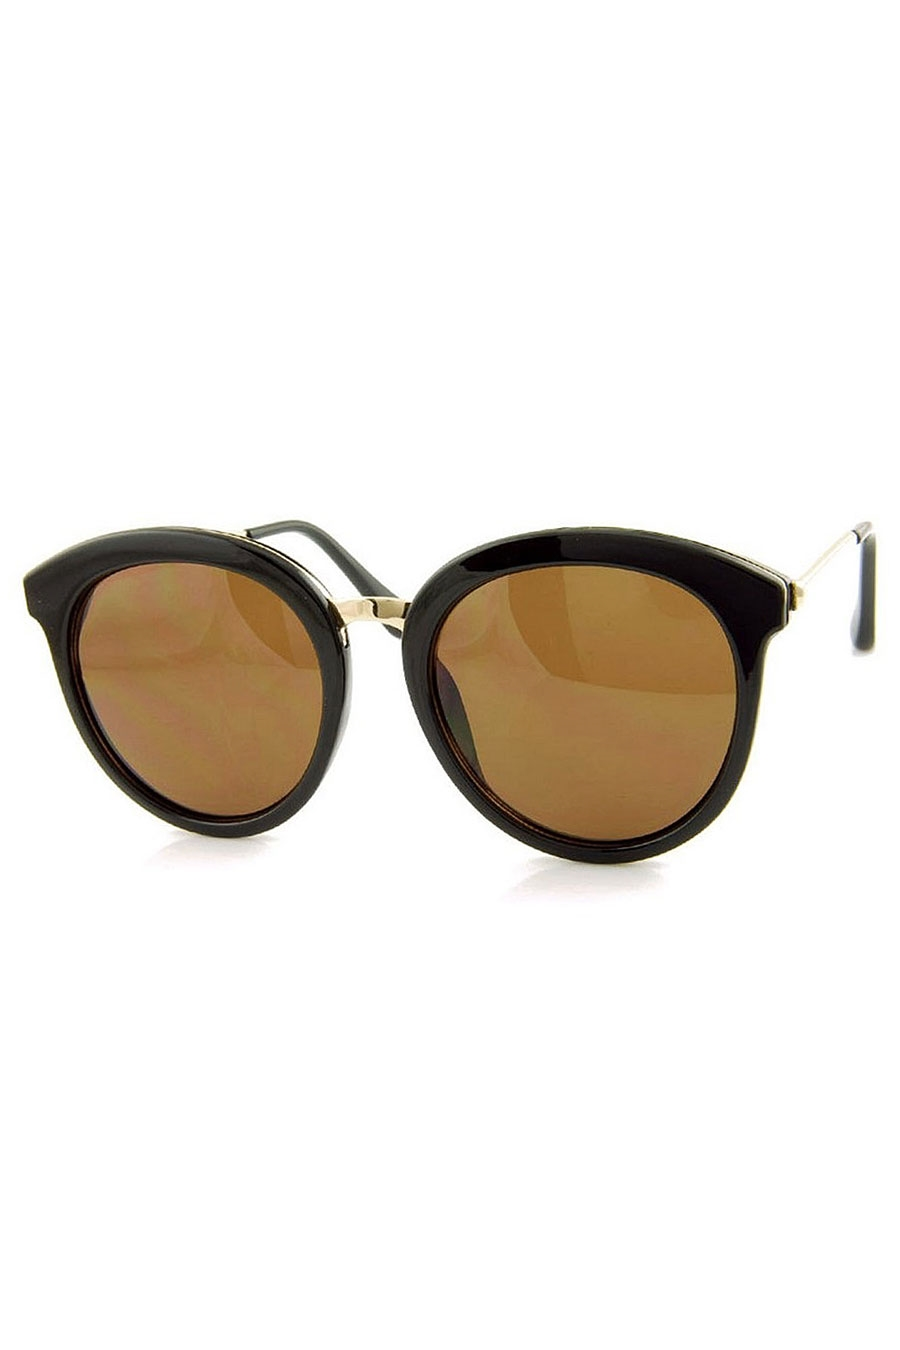 FASHION DESIGN SUNGLASSES - orangeshine.com